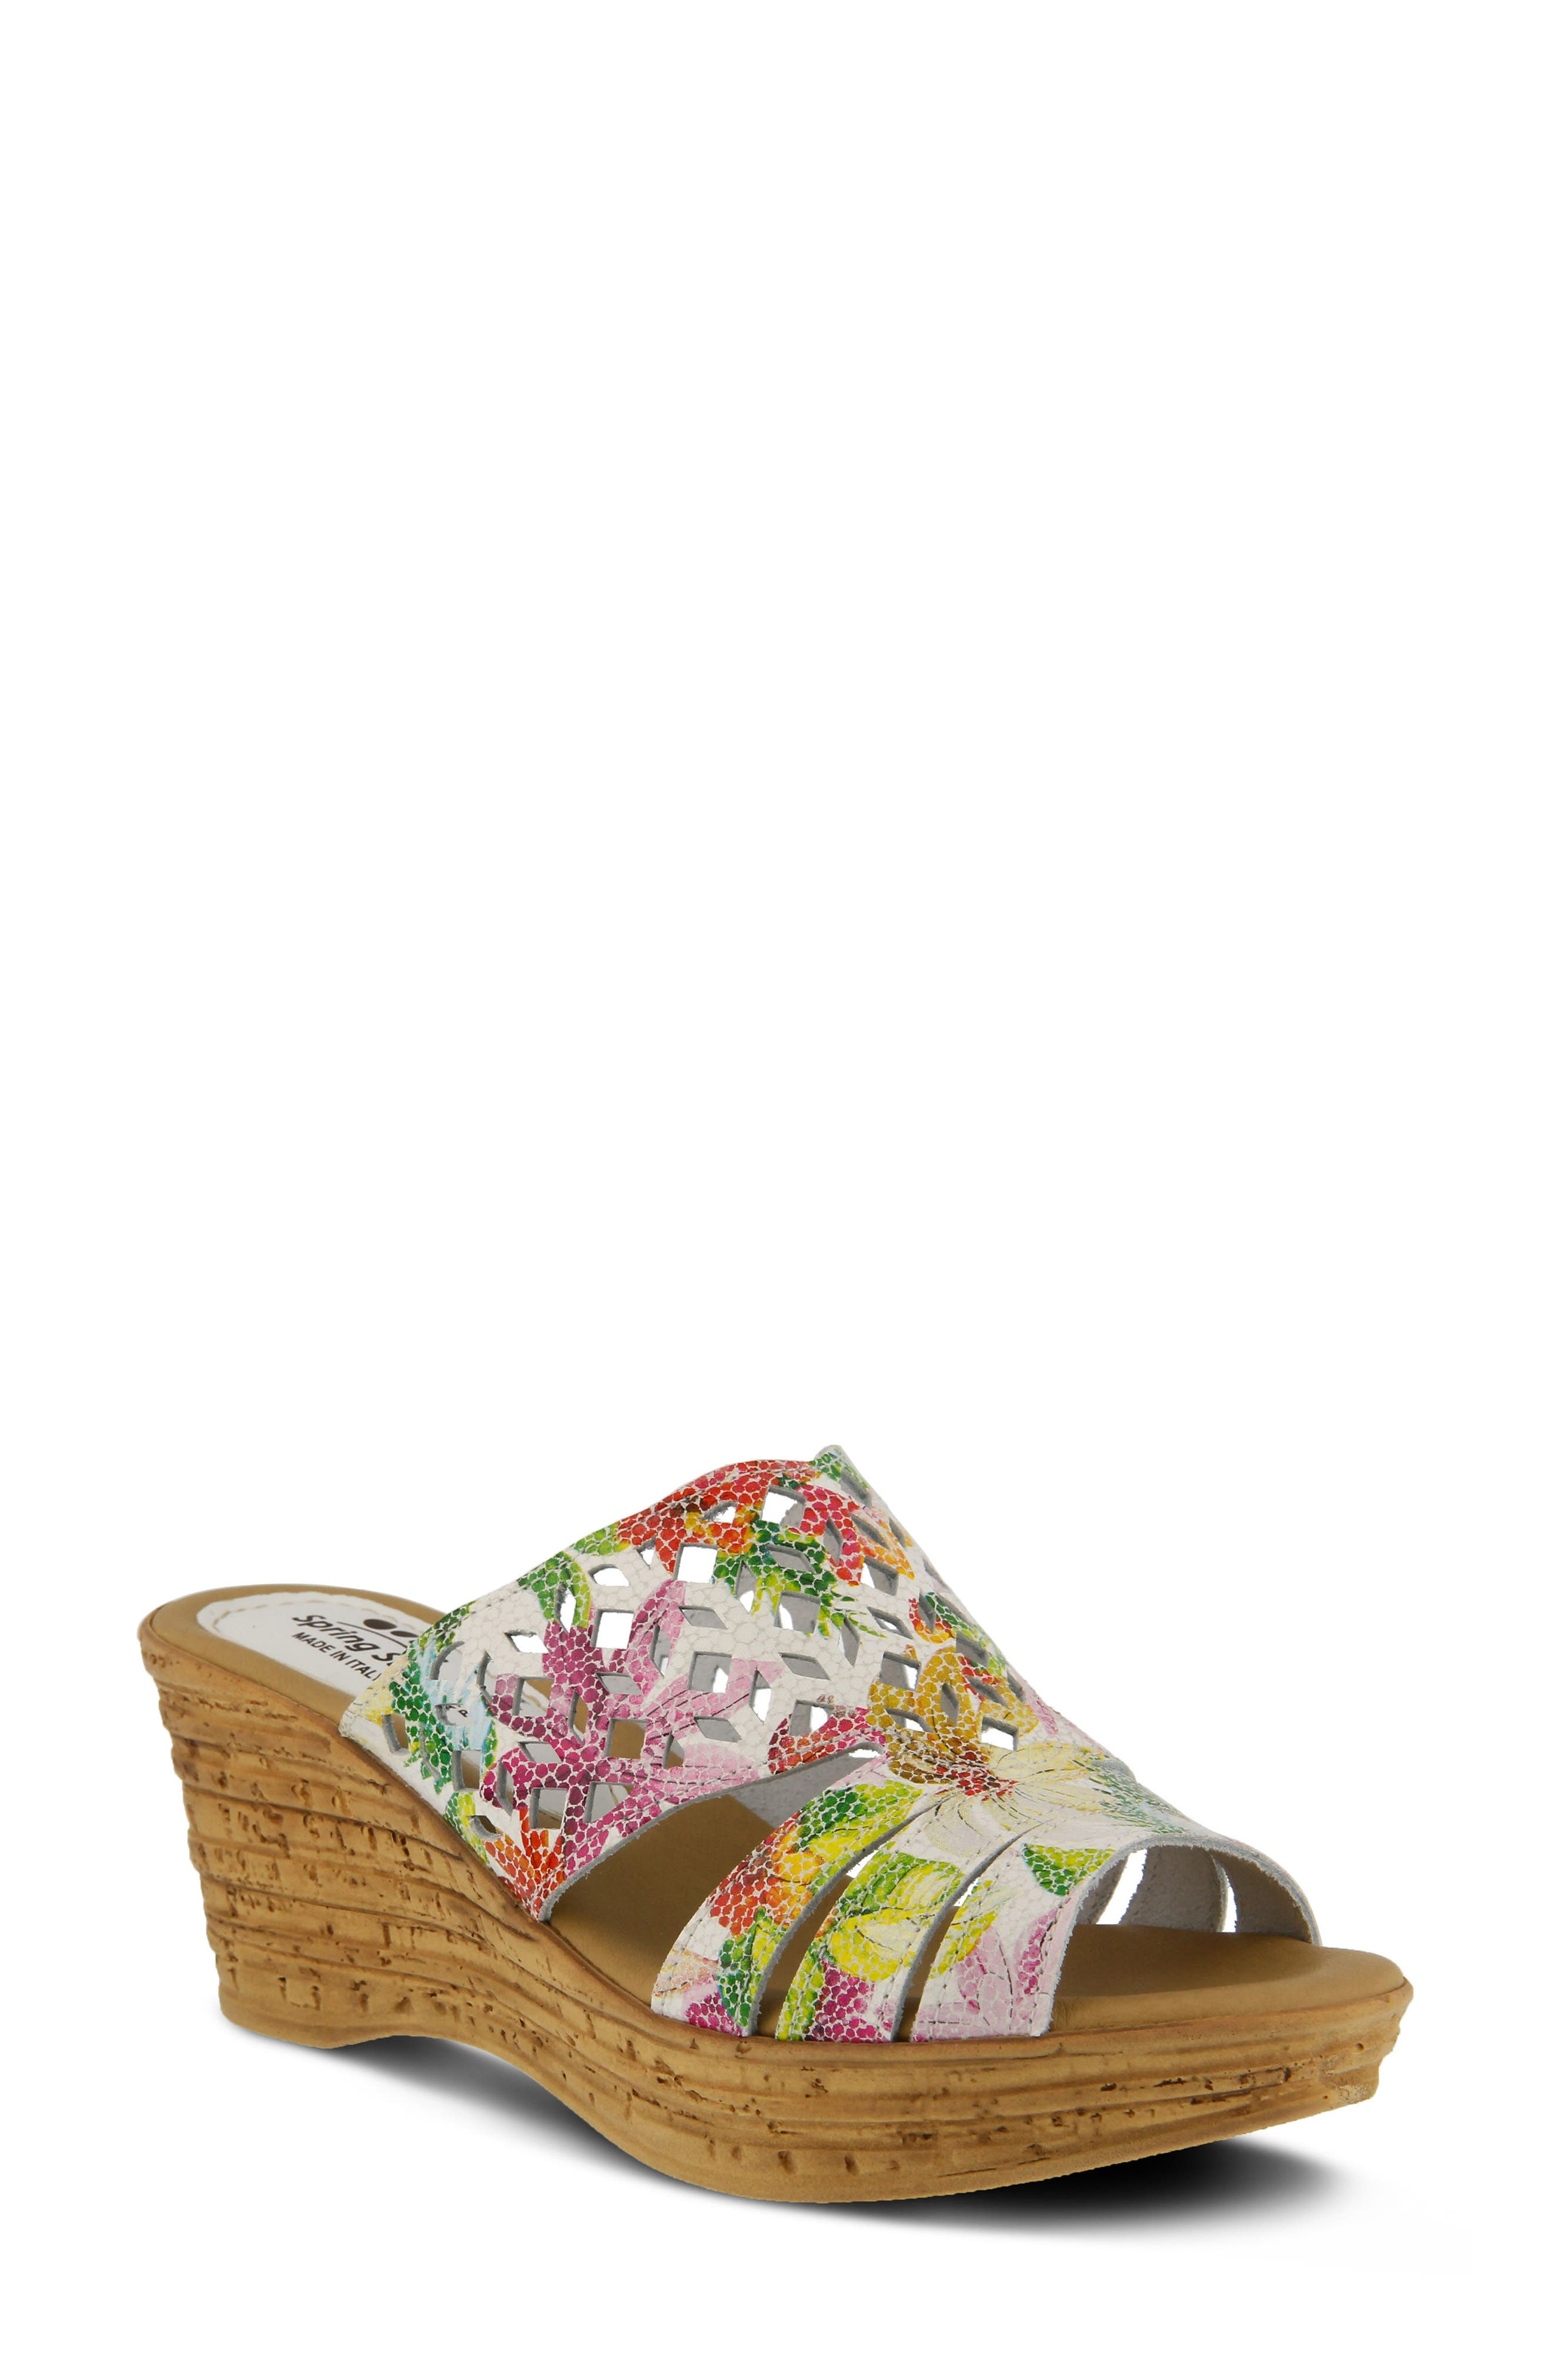 Viniko Platform Wedge Sandal,                             Main thumbnail 1, color,                             WHITE LEATHER